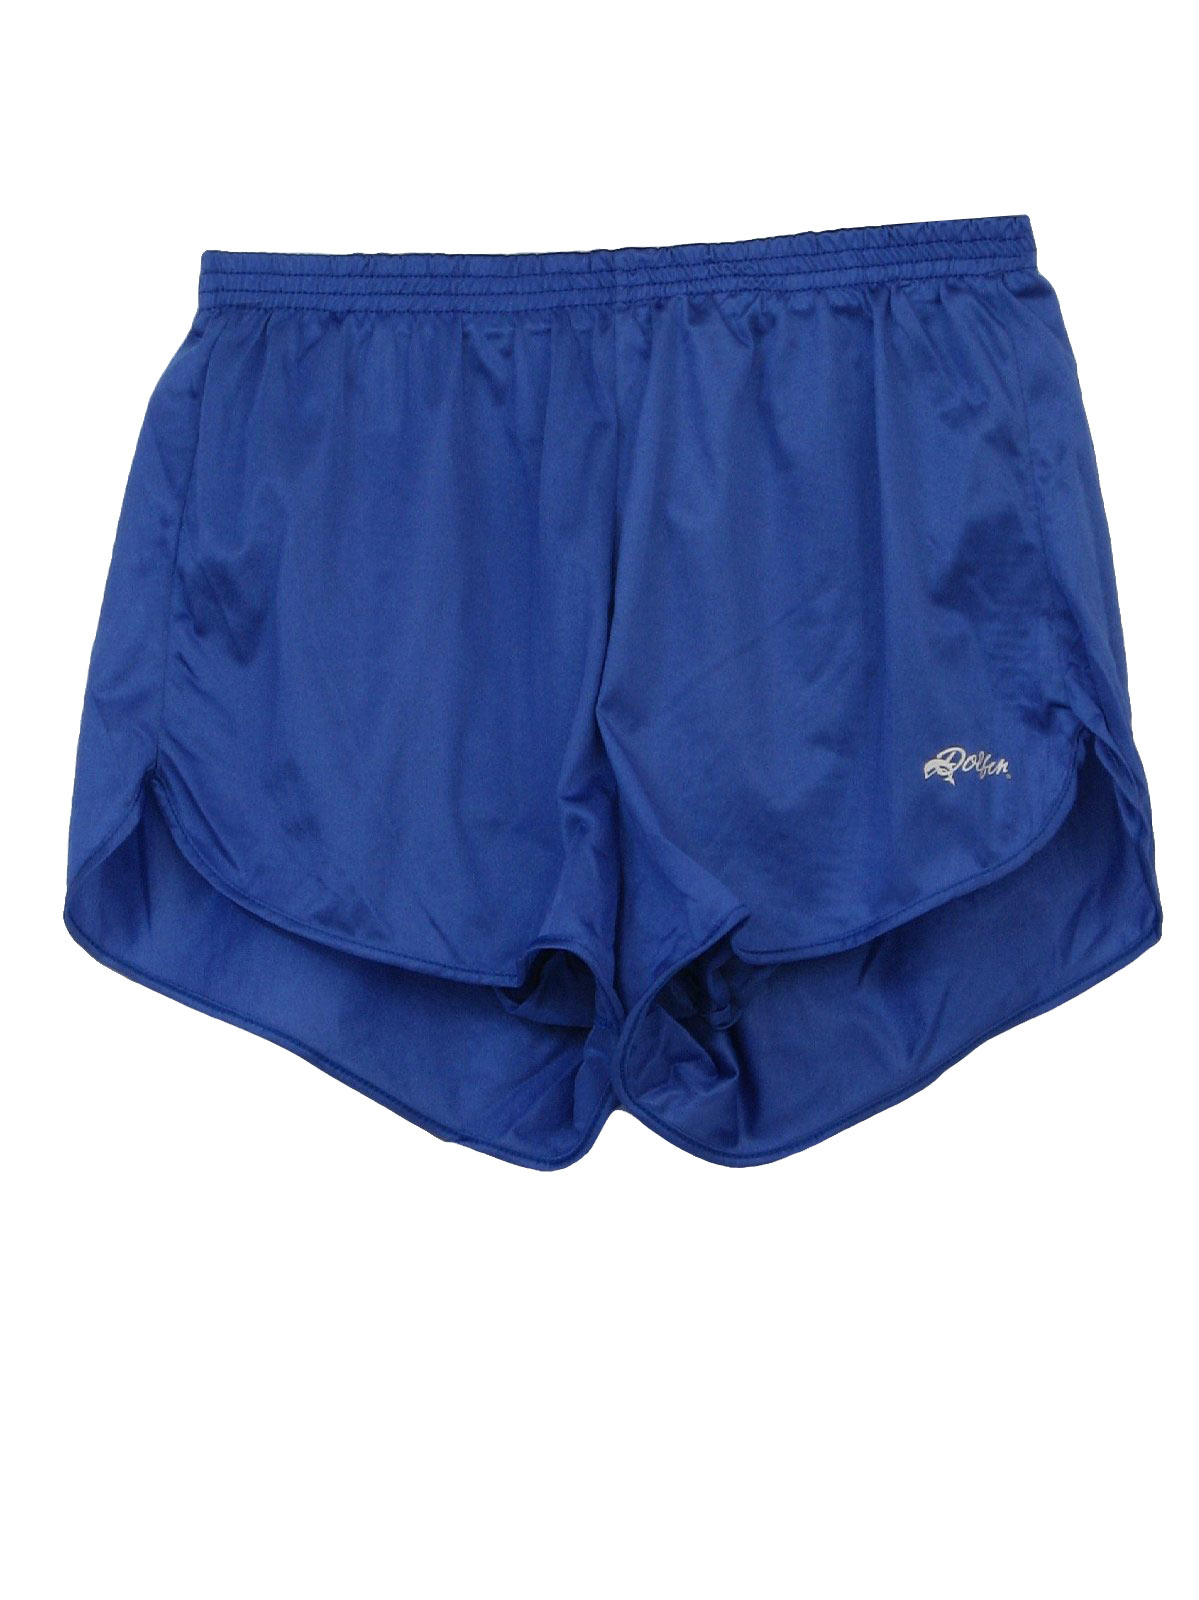 Vintage Dolphin Shorts 116